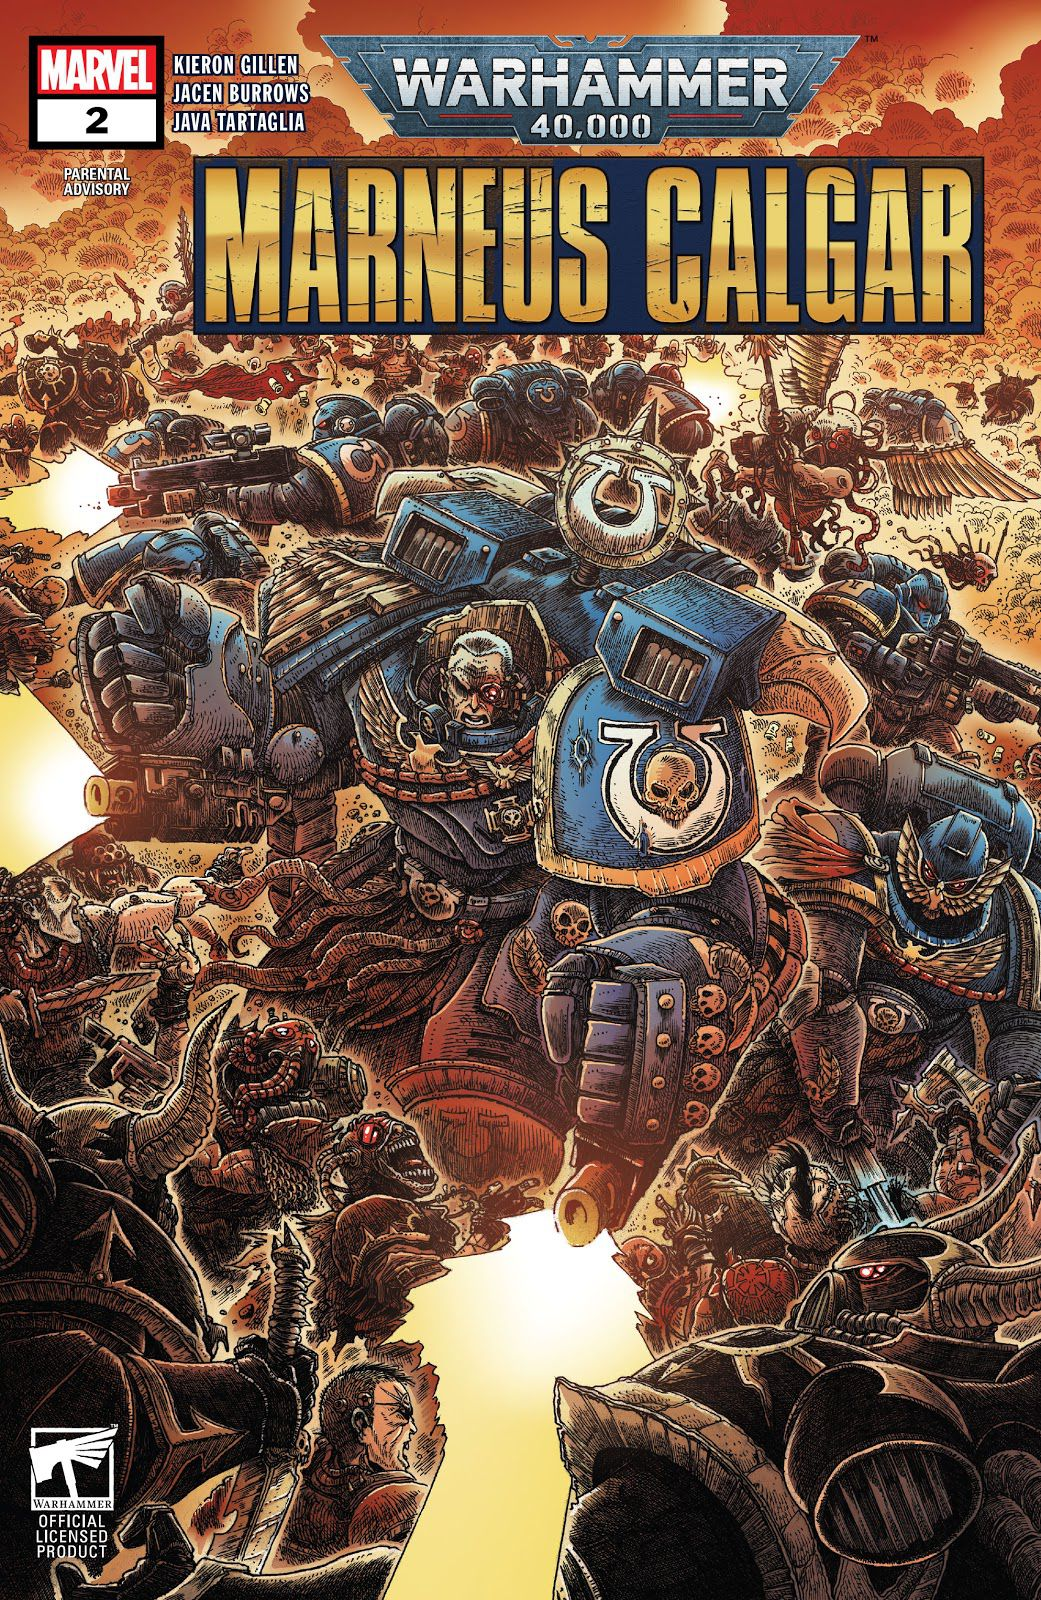 Cover art for Marneus Calgar #2 shows an angry blue space boy going pew pew.